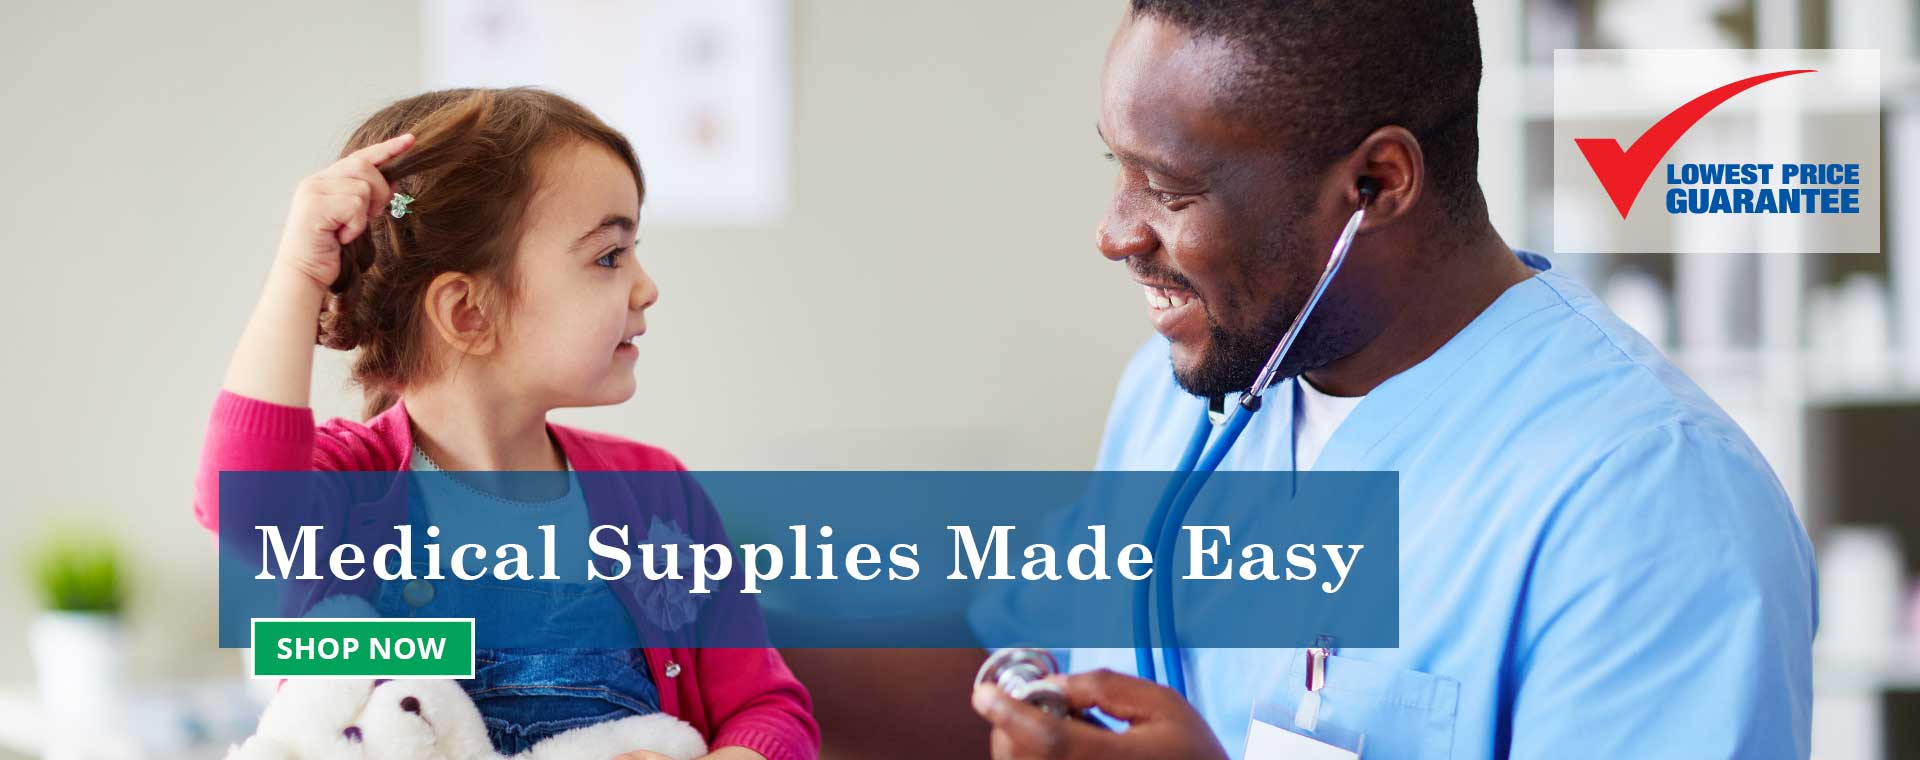 Medical Supplies Made Easy